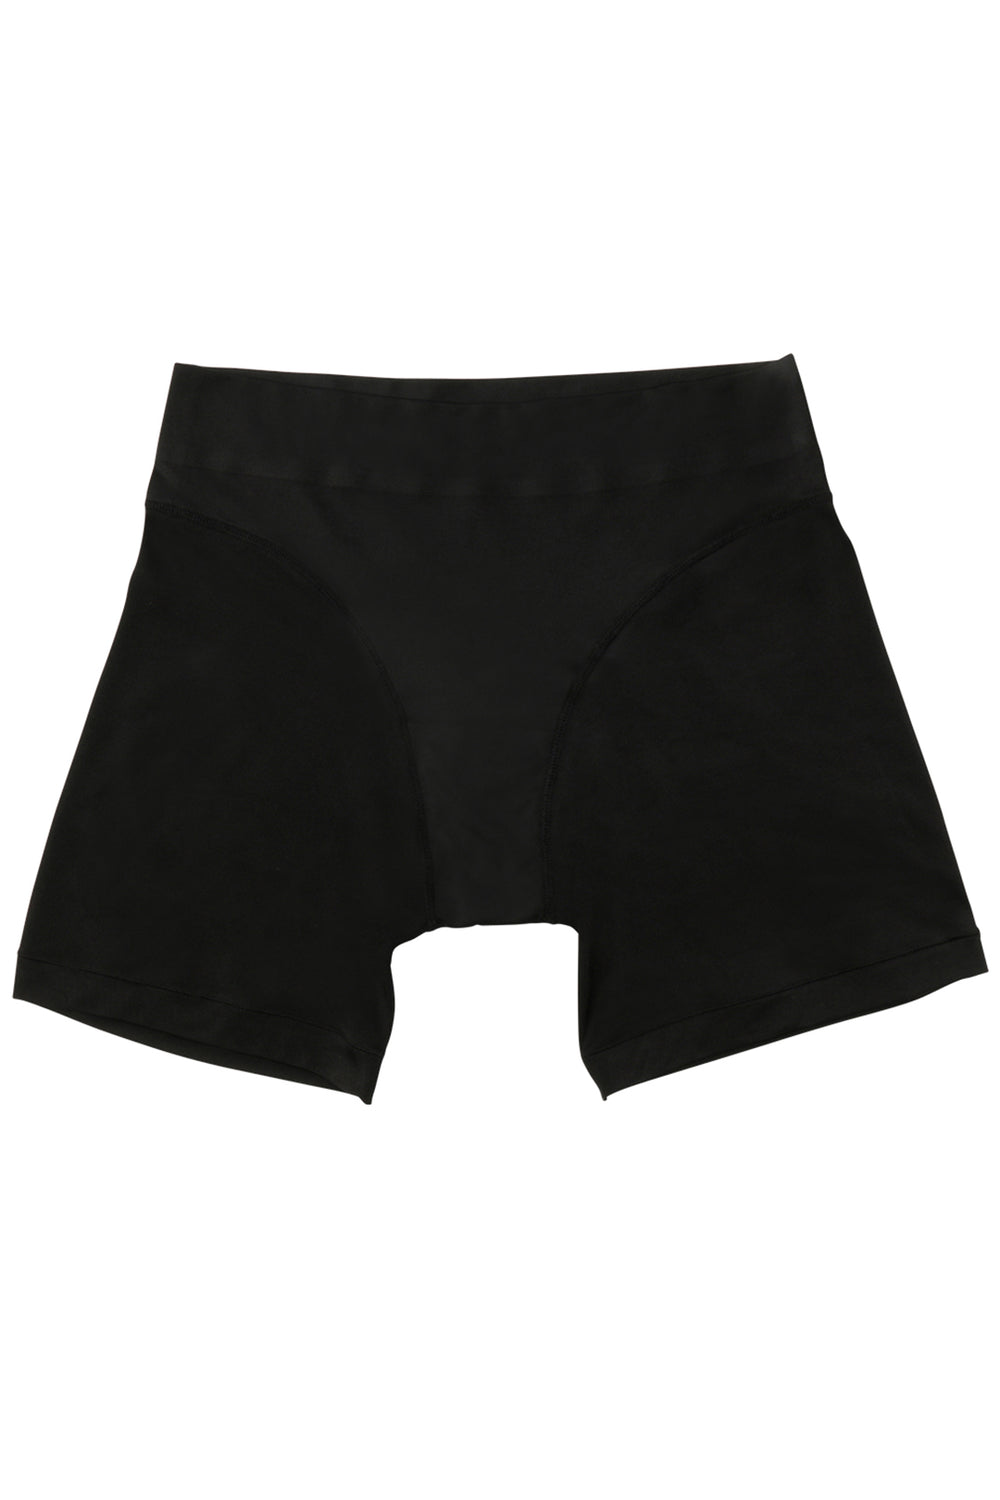 Black high waisted biker short, eco-friendly machine washable